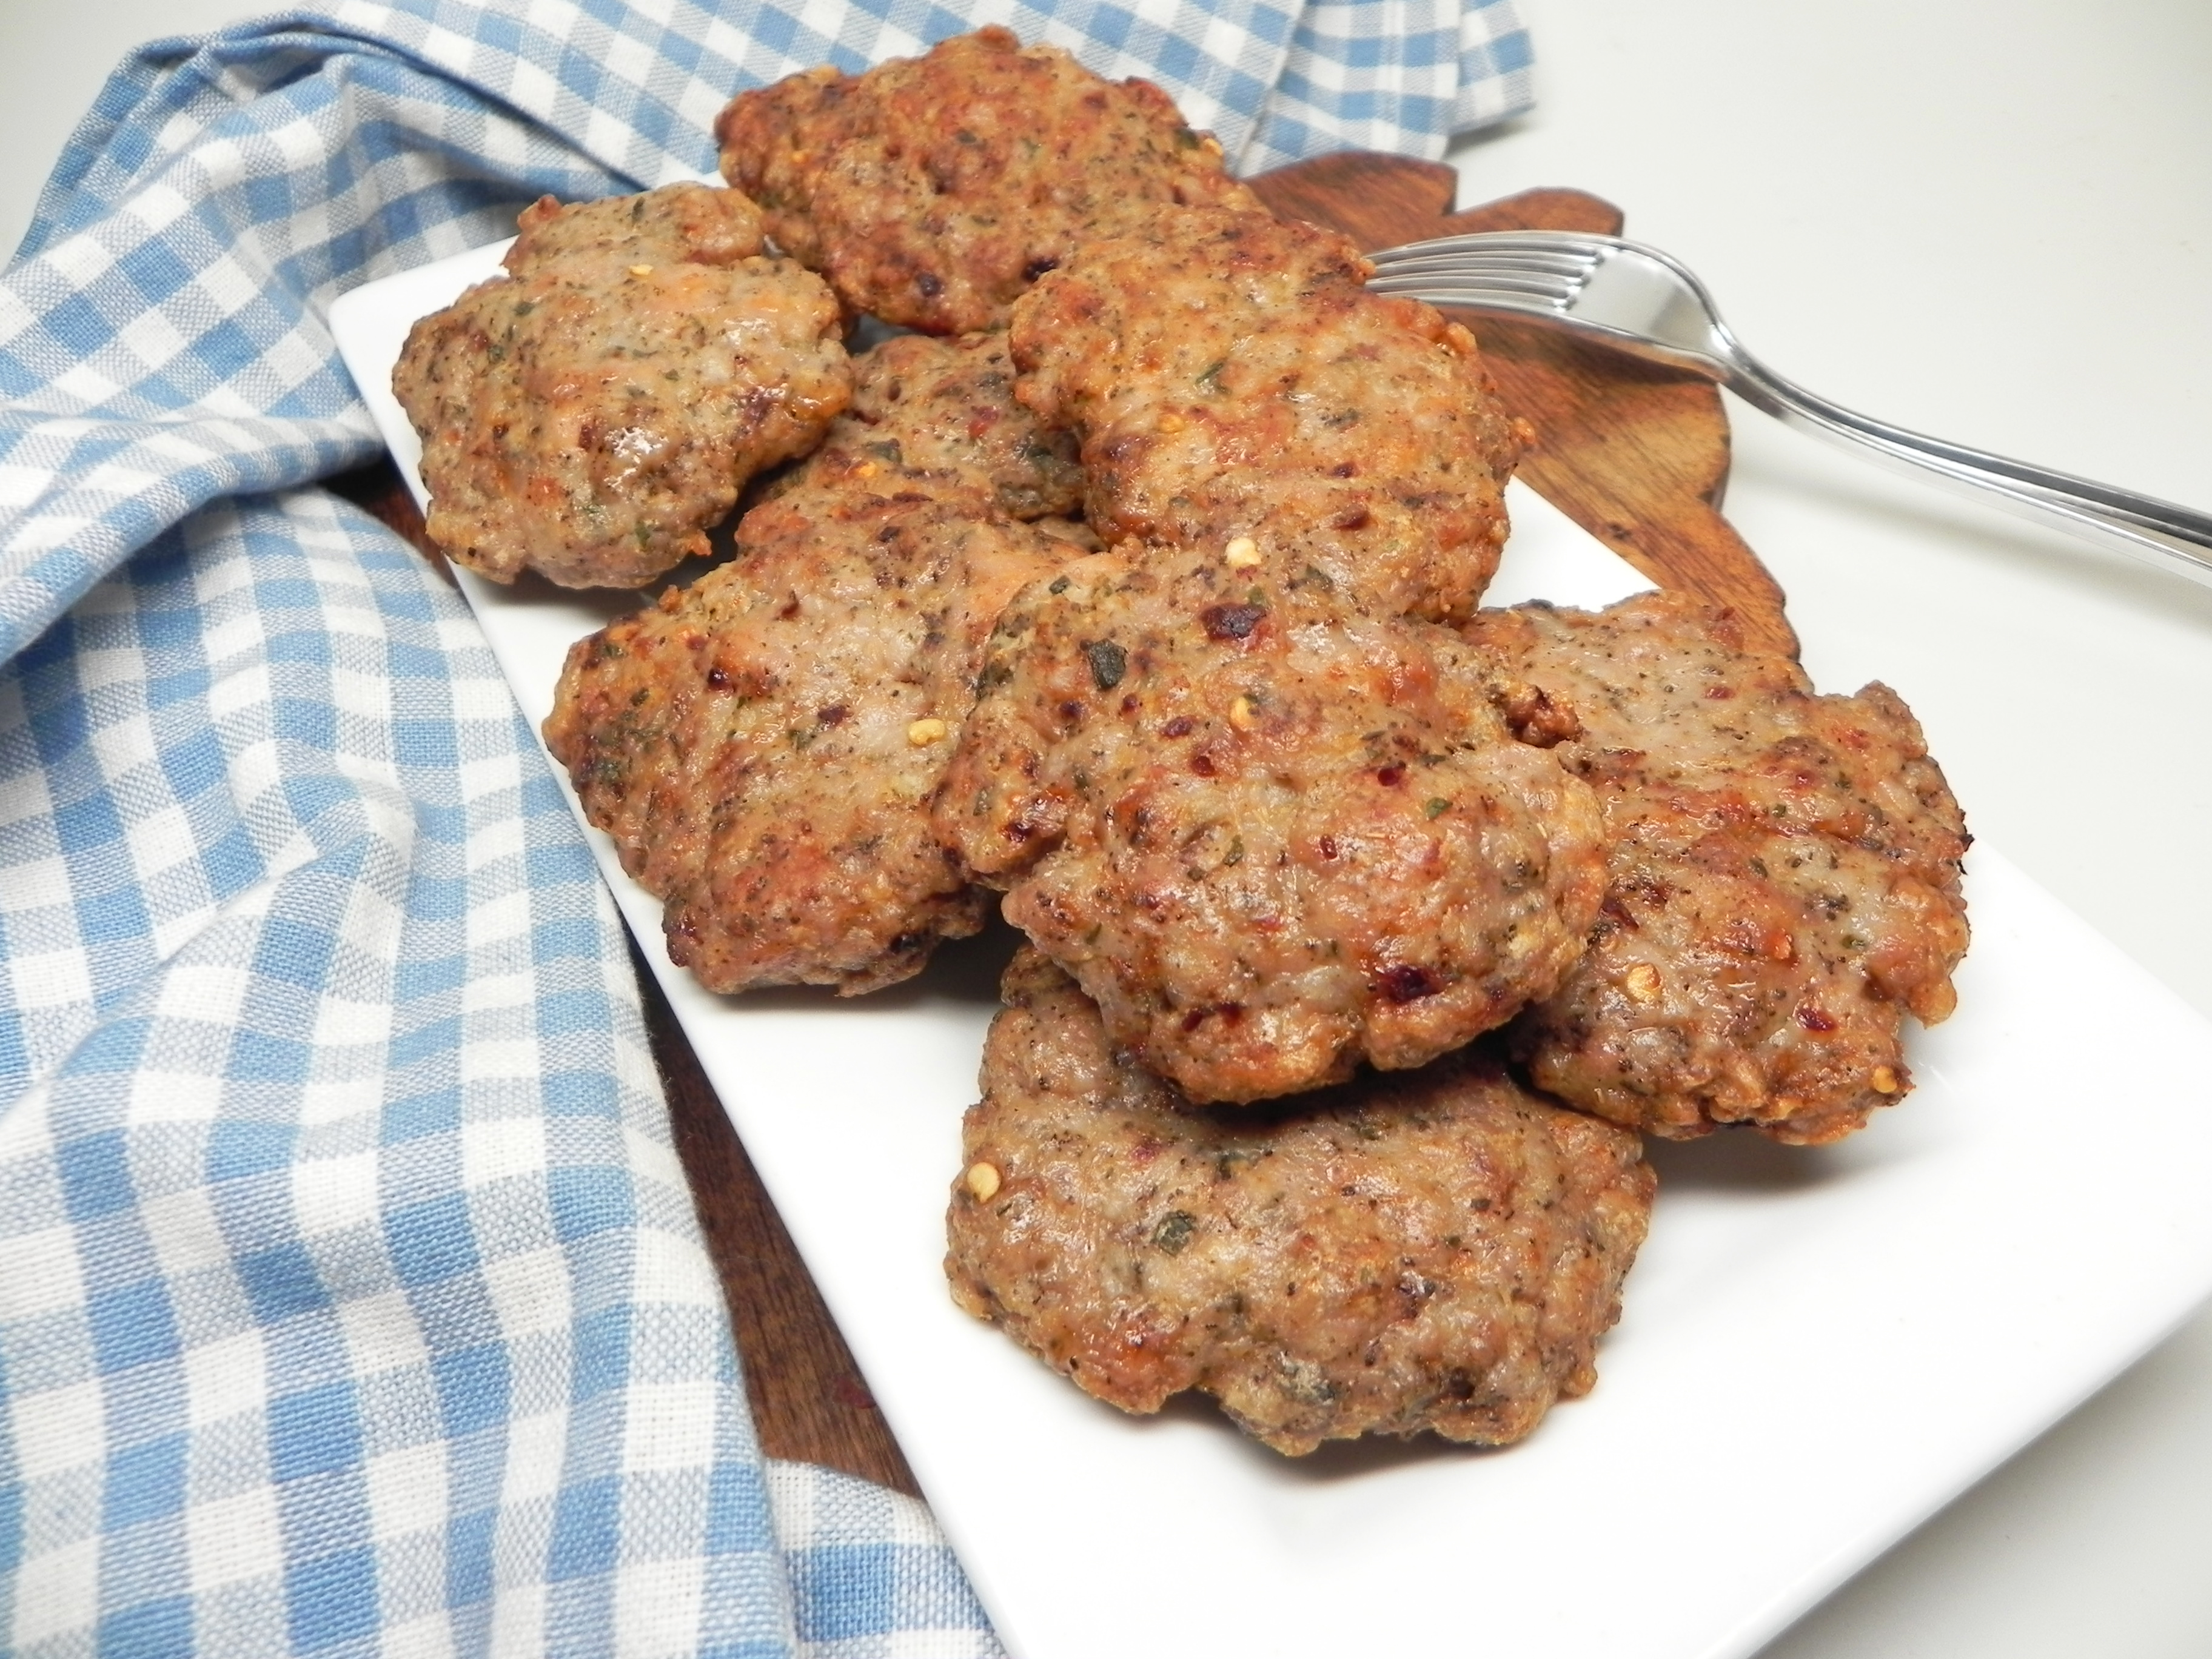 Spicy Homemade Breakfast Sausage in the Air Fryer